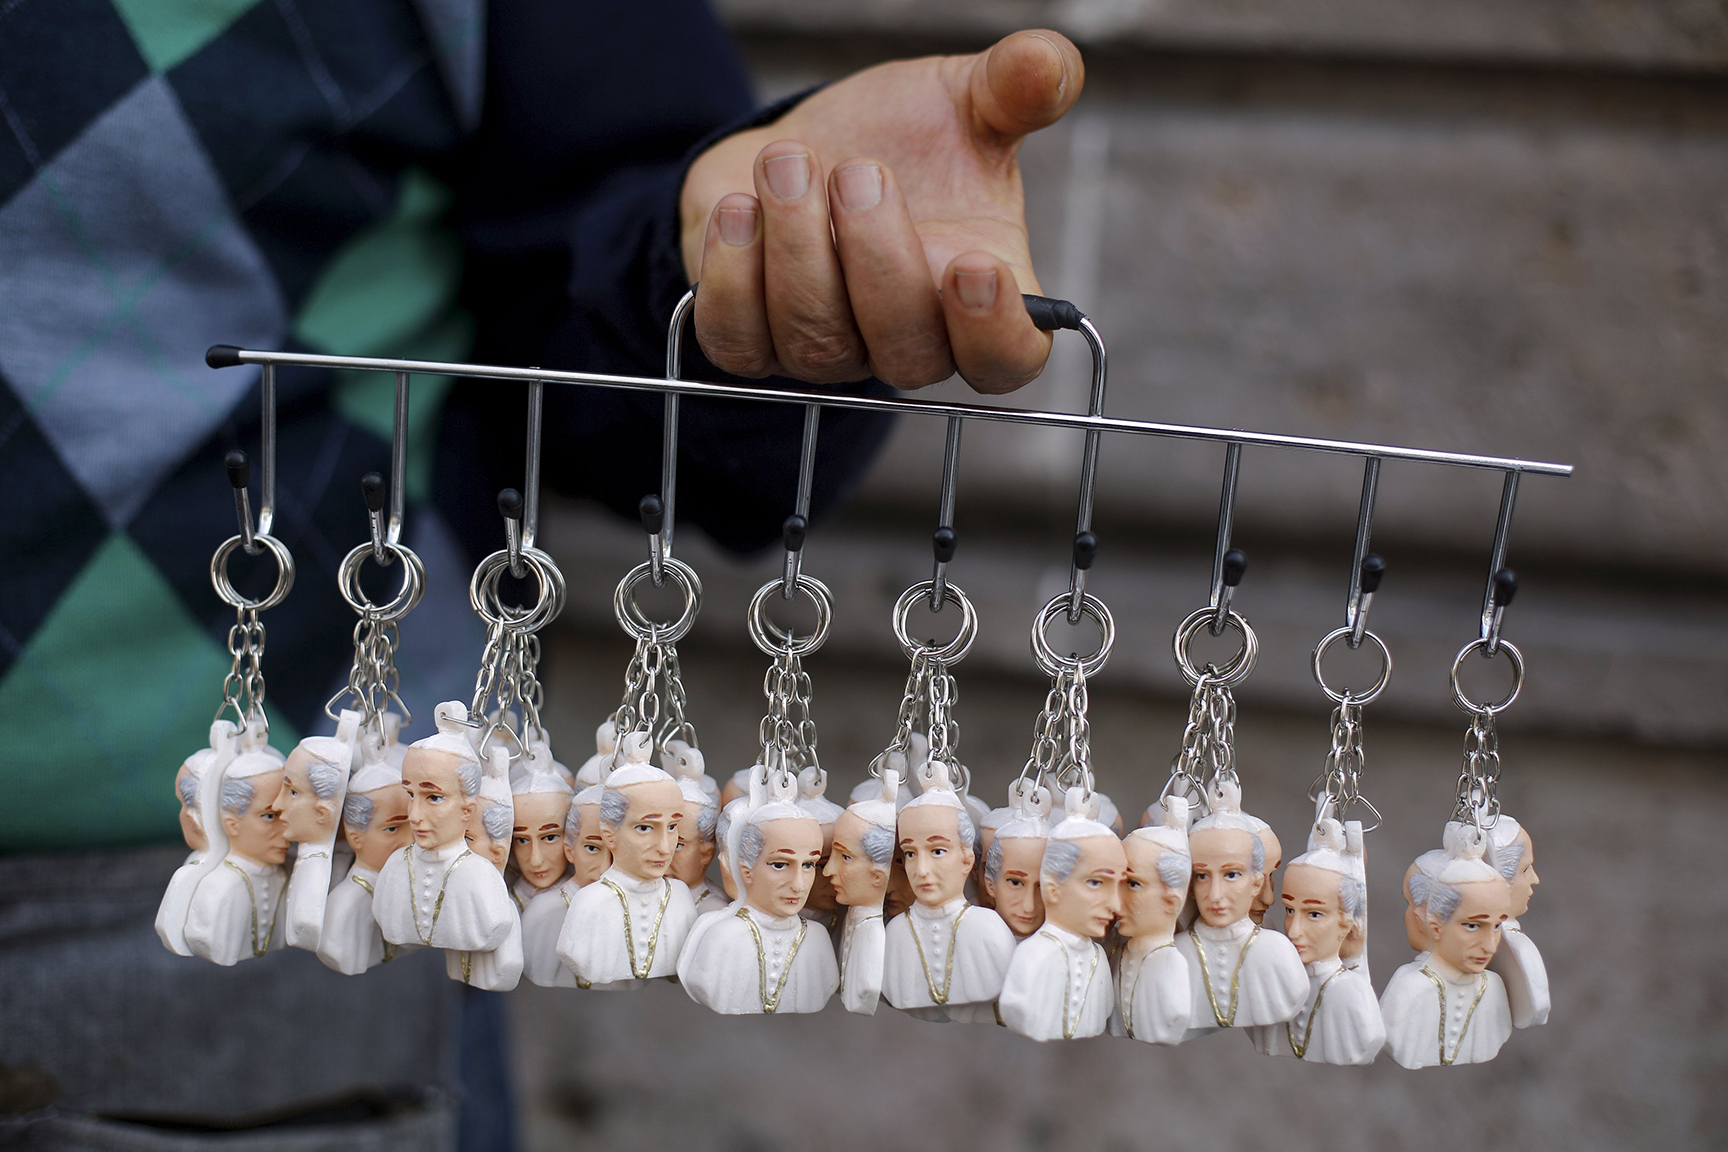 A man sells key-chains in the shape of Pope Francis in downtown Morelia